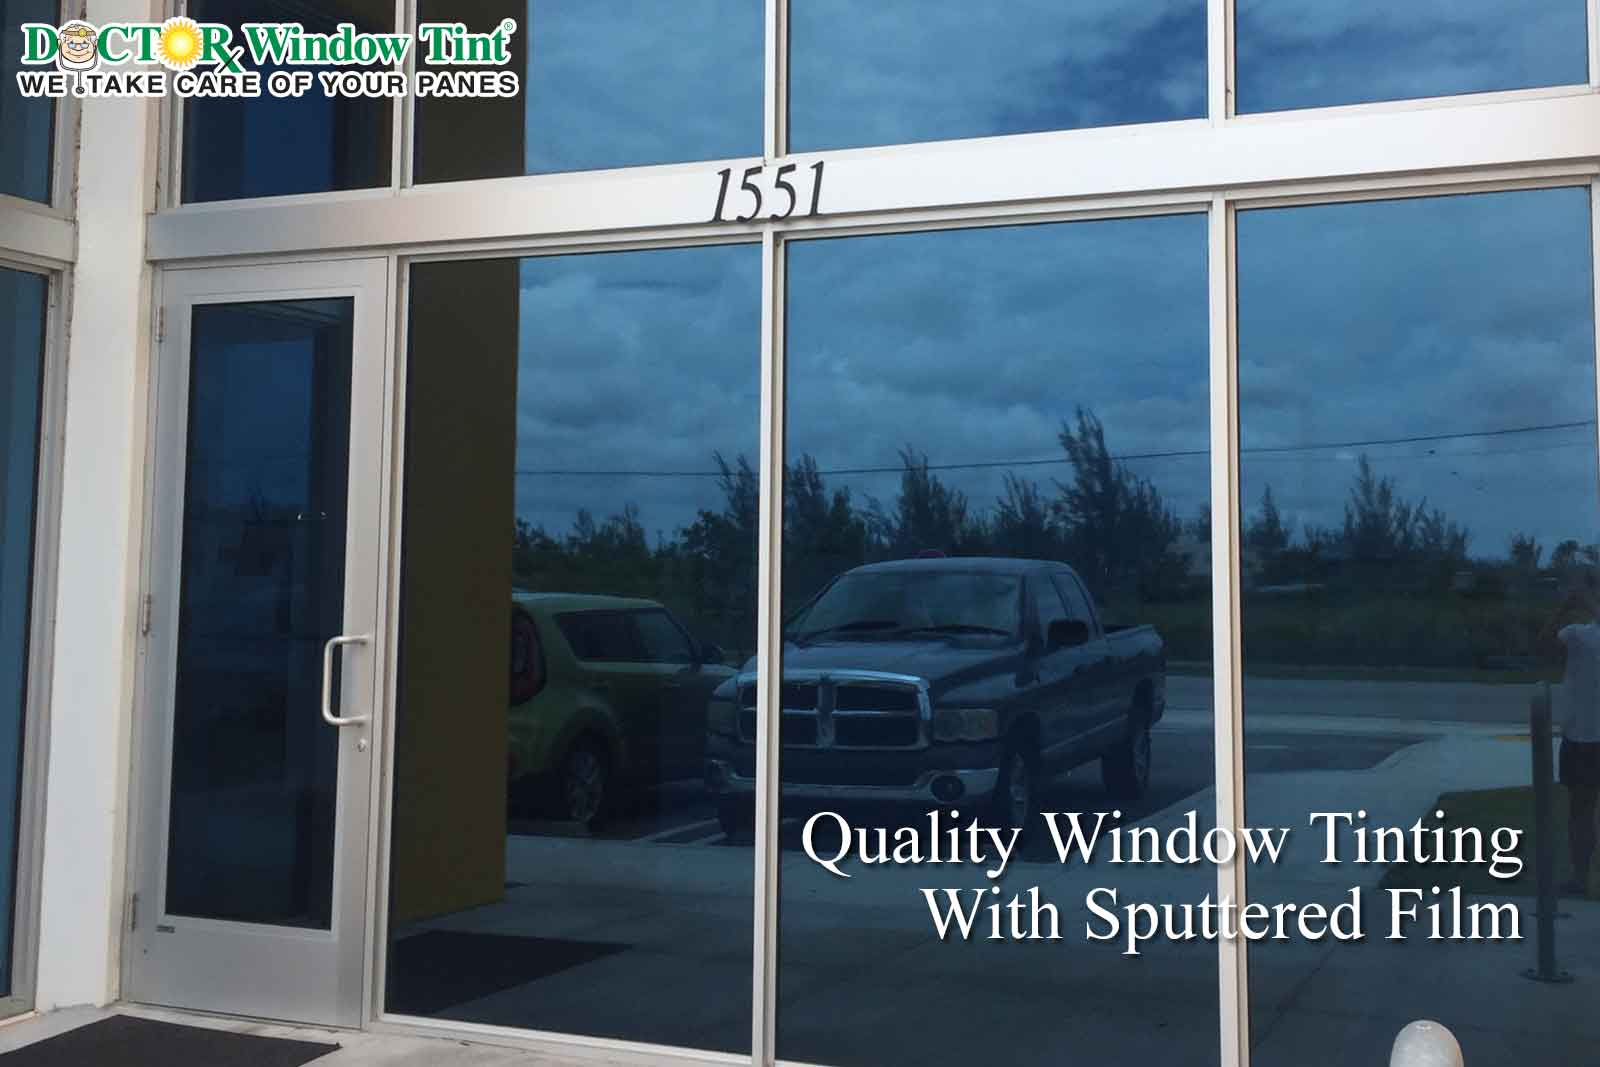 Quality window tinting